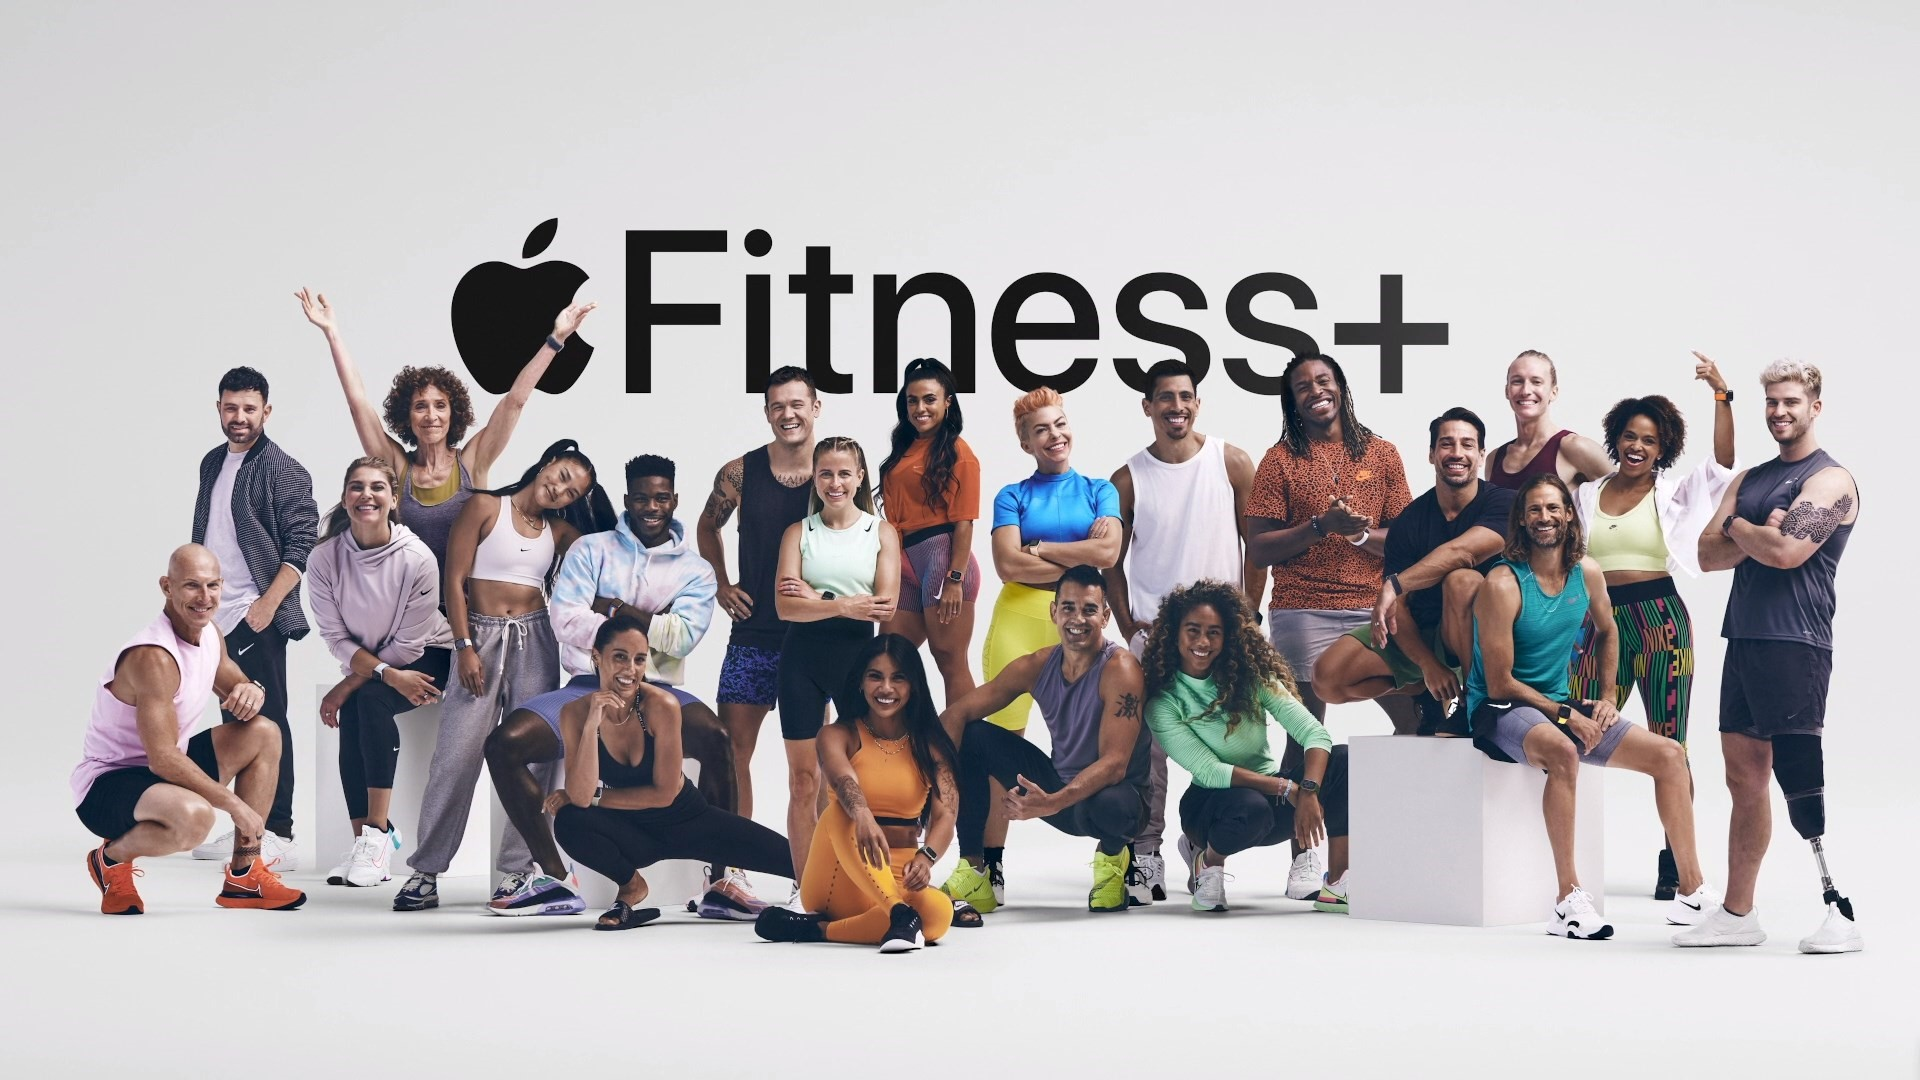 Apple's trainers for Fitness+